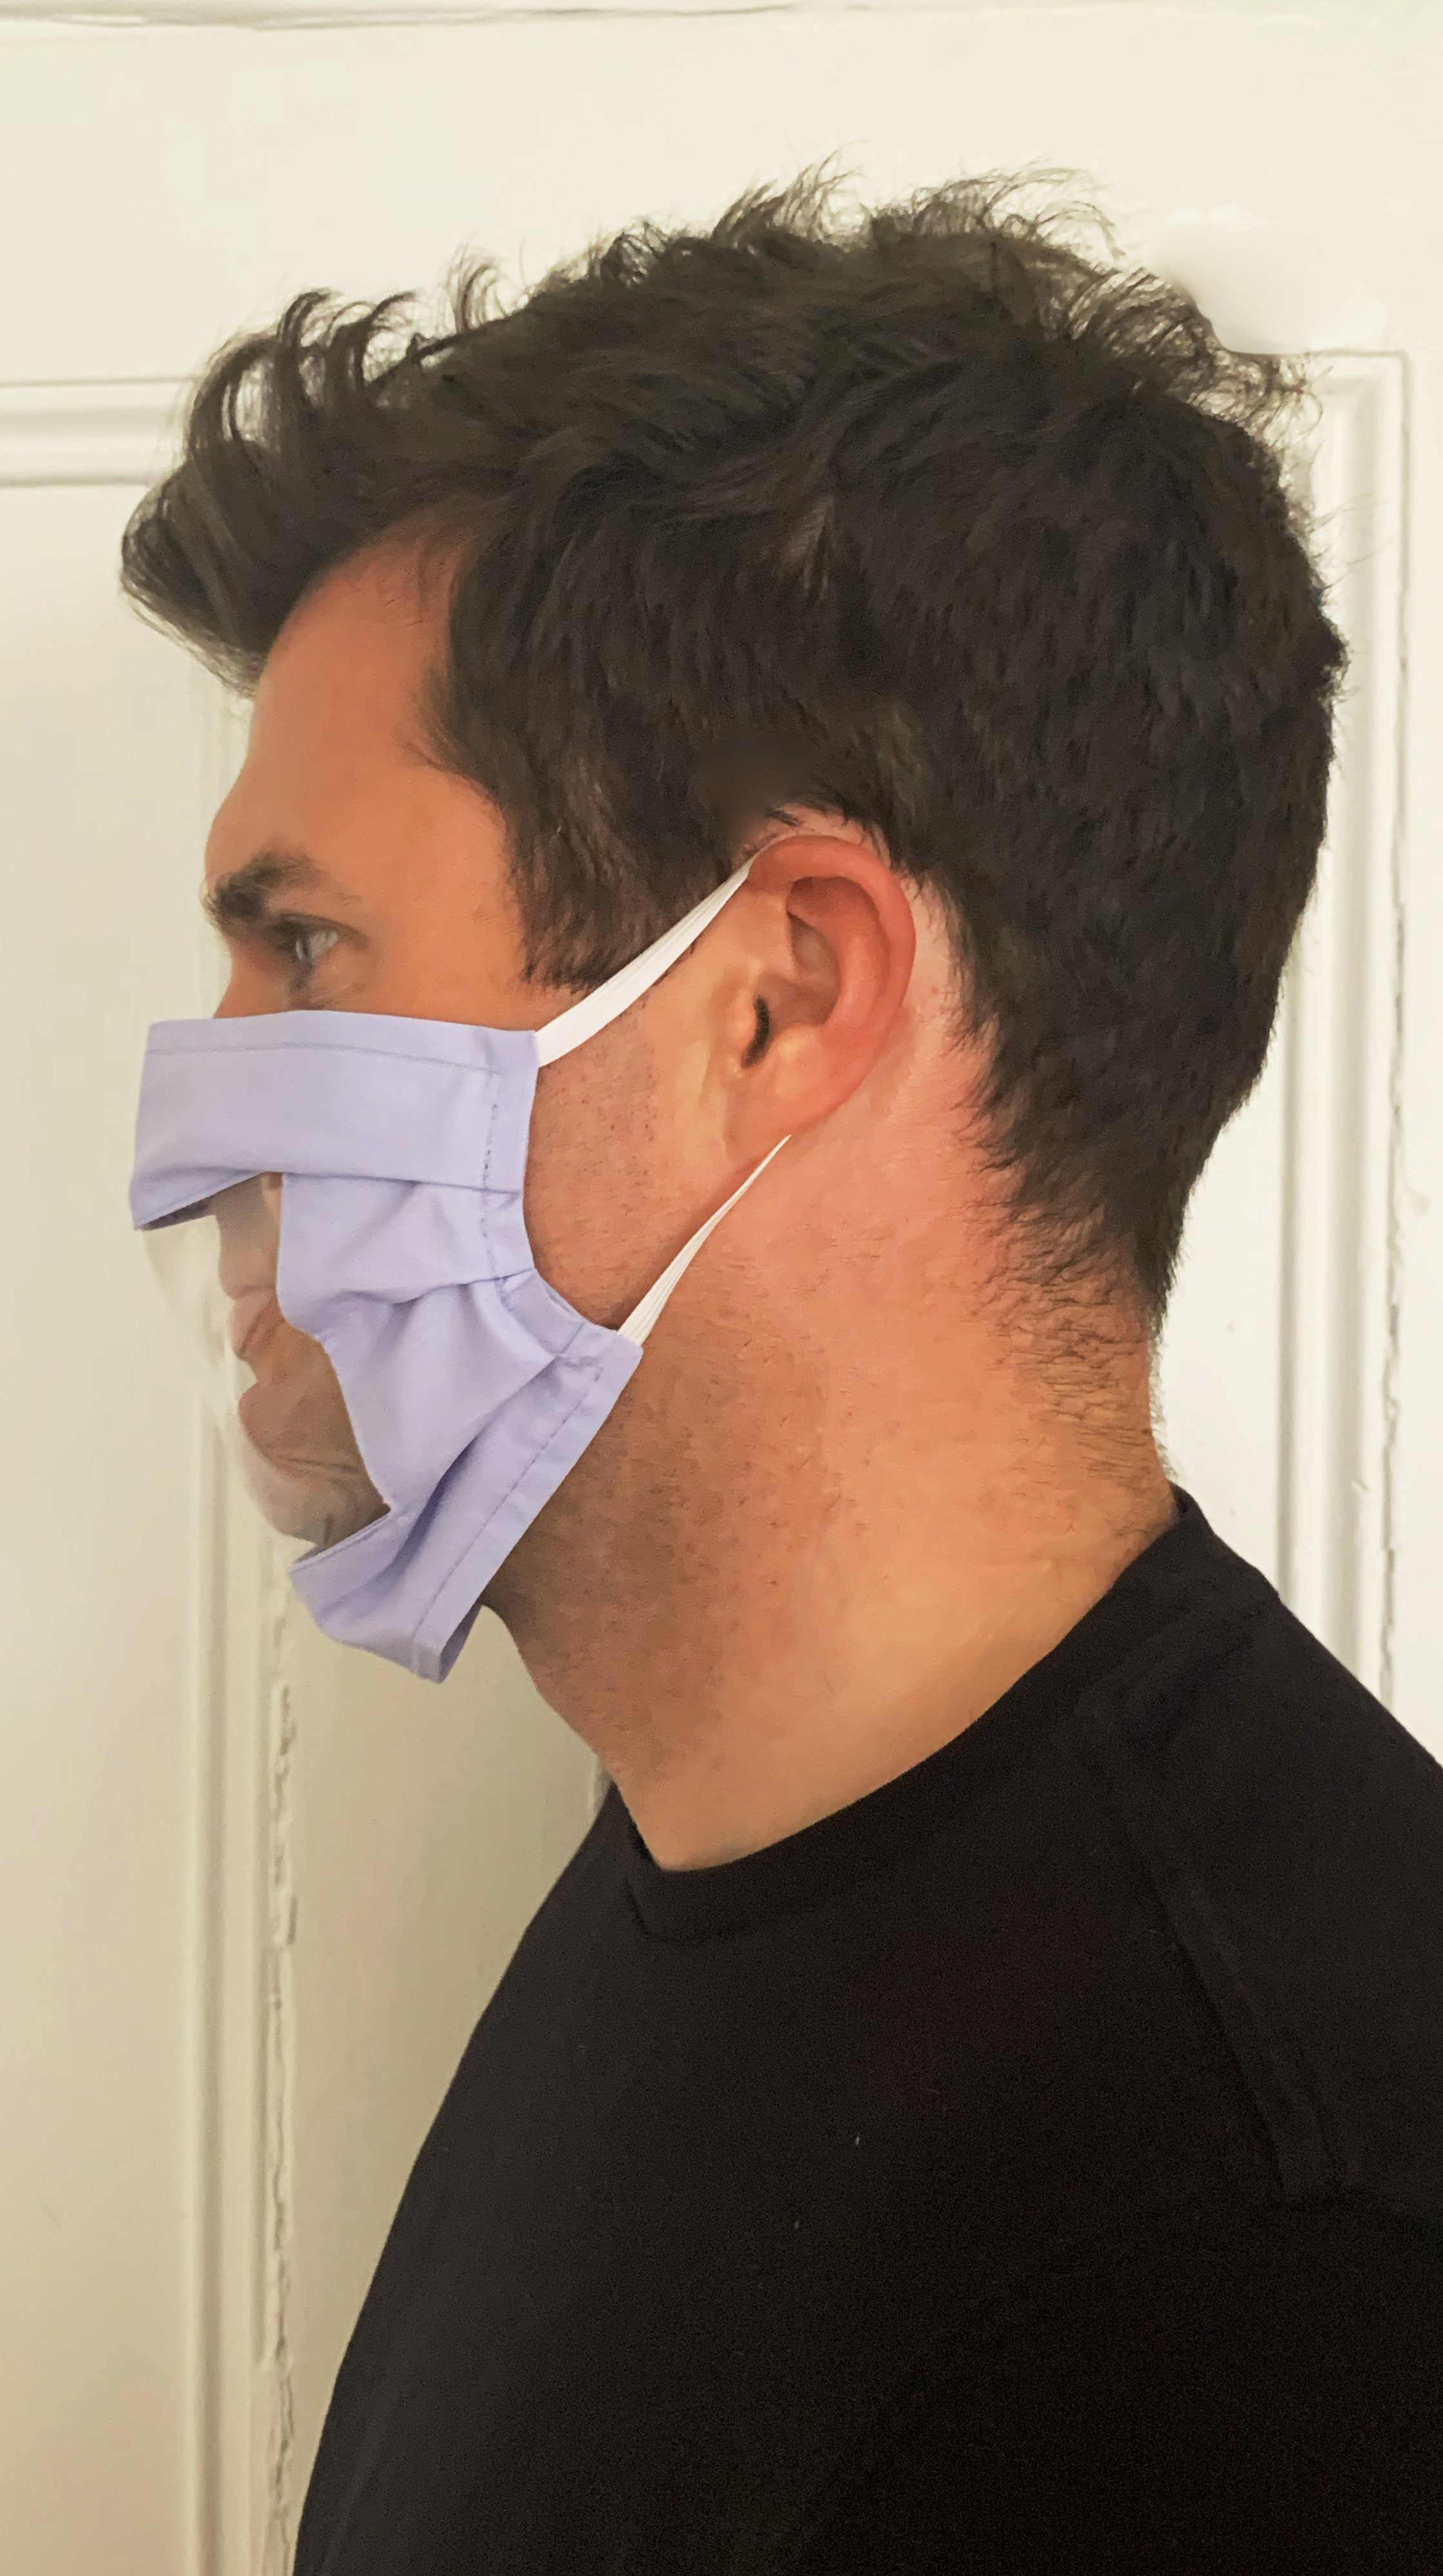 100% Cotton Communicator Mask with Vinyl Window for Deaf and Hard of Hearing | Nineteenth Amendment